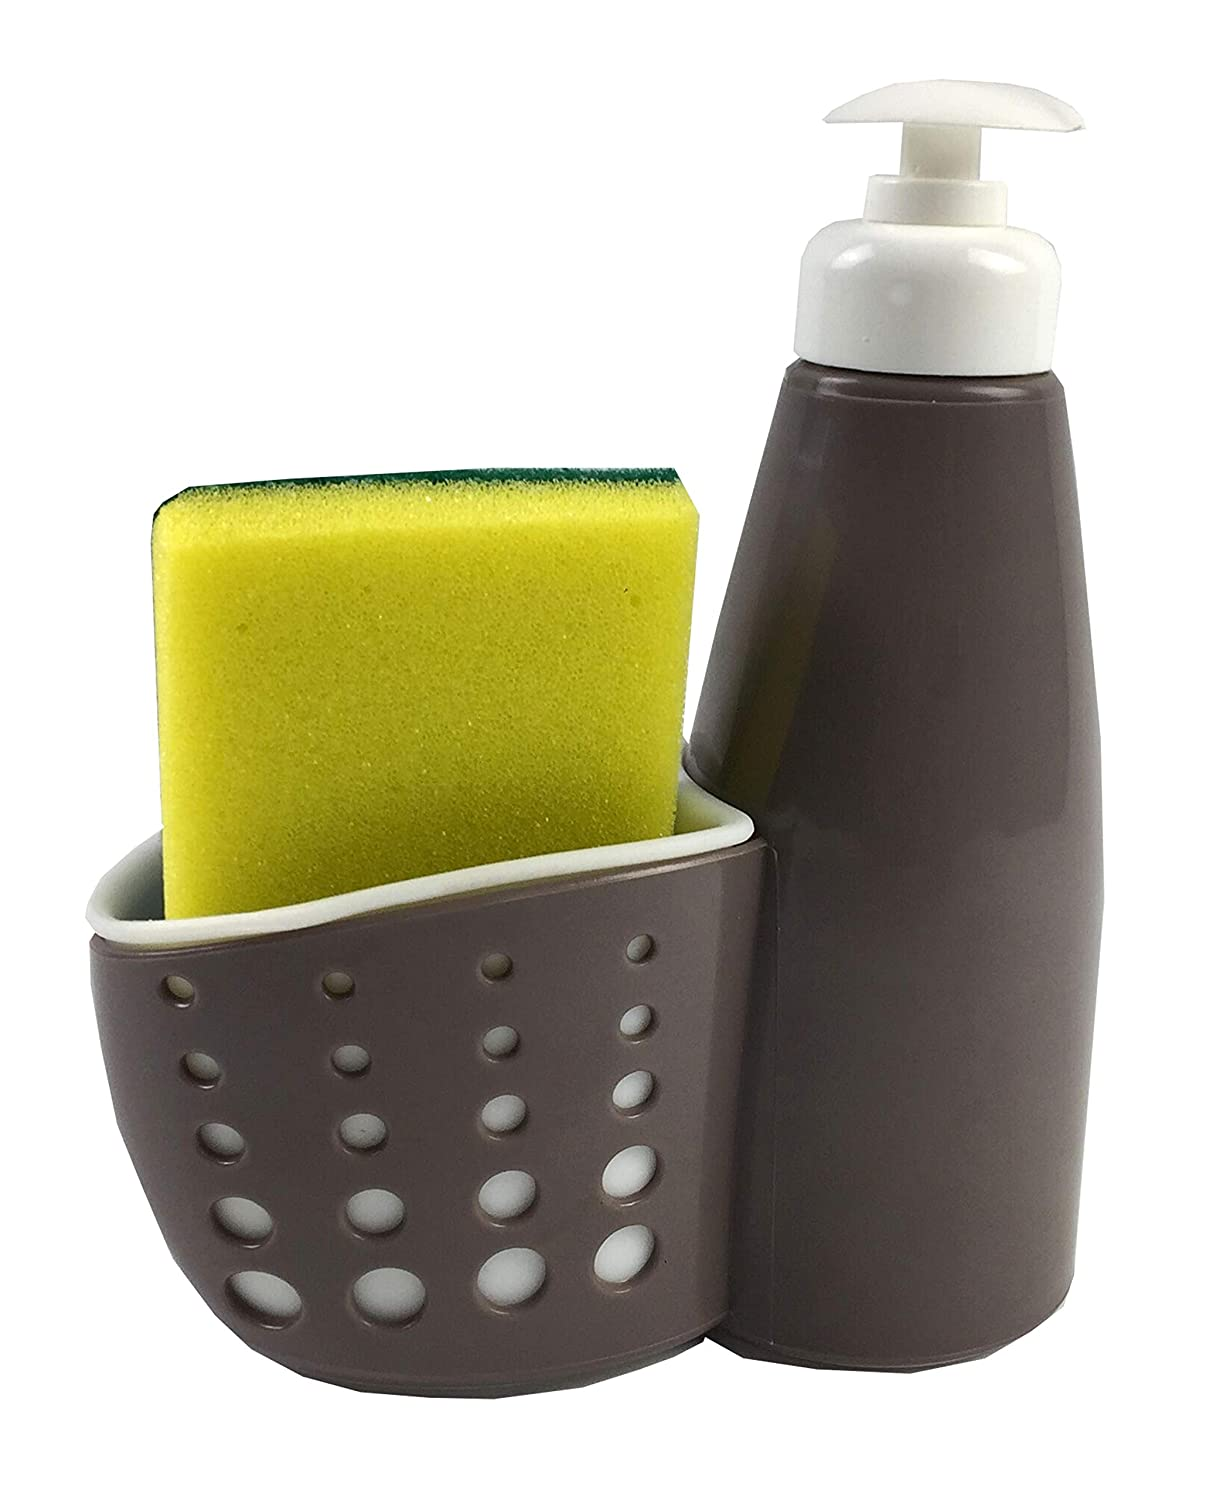 Home Basics Pump with Perforated Sponge Kitchen Sink Countertop Liquid Hand  Soap Dispenser Caddy and Scrubber Holder Storage